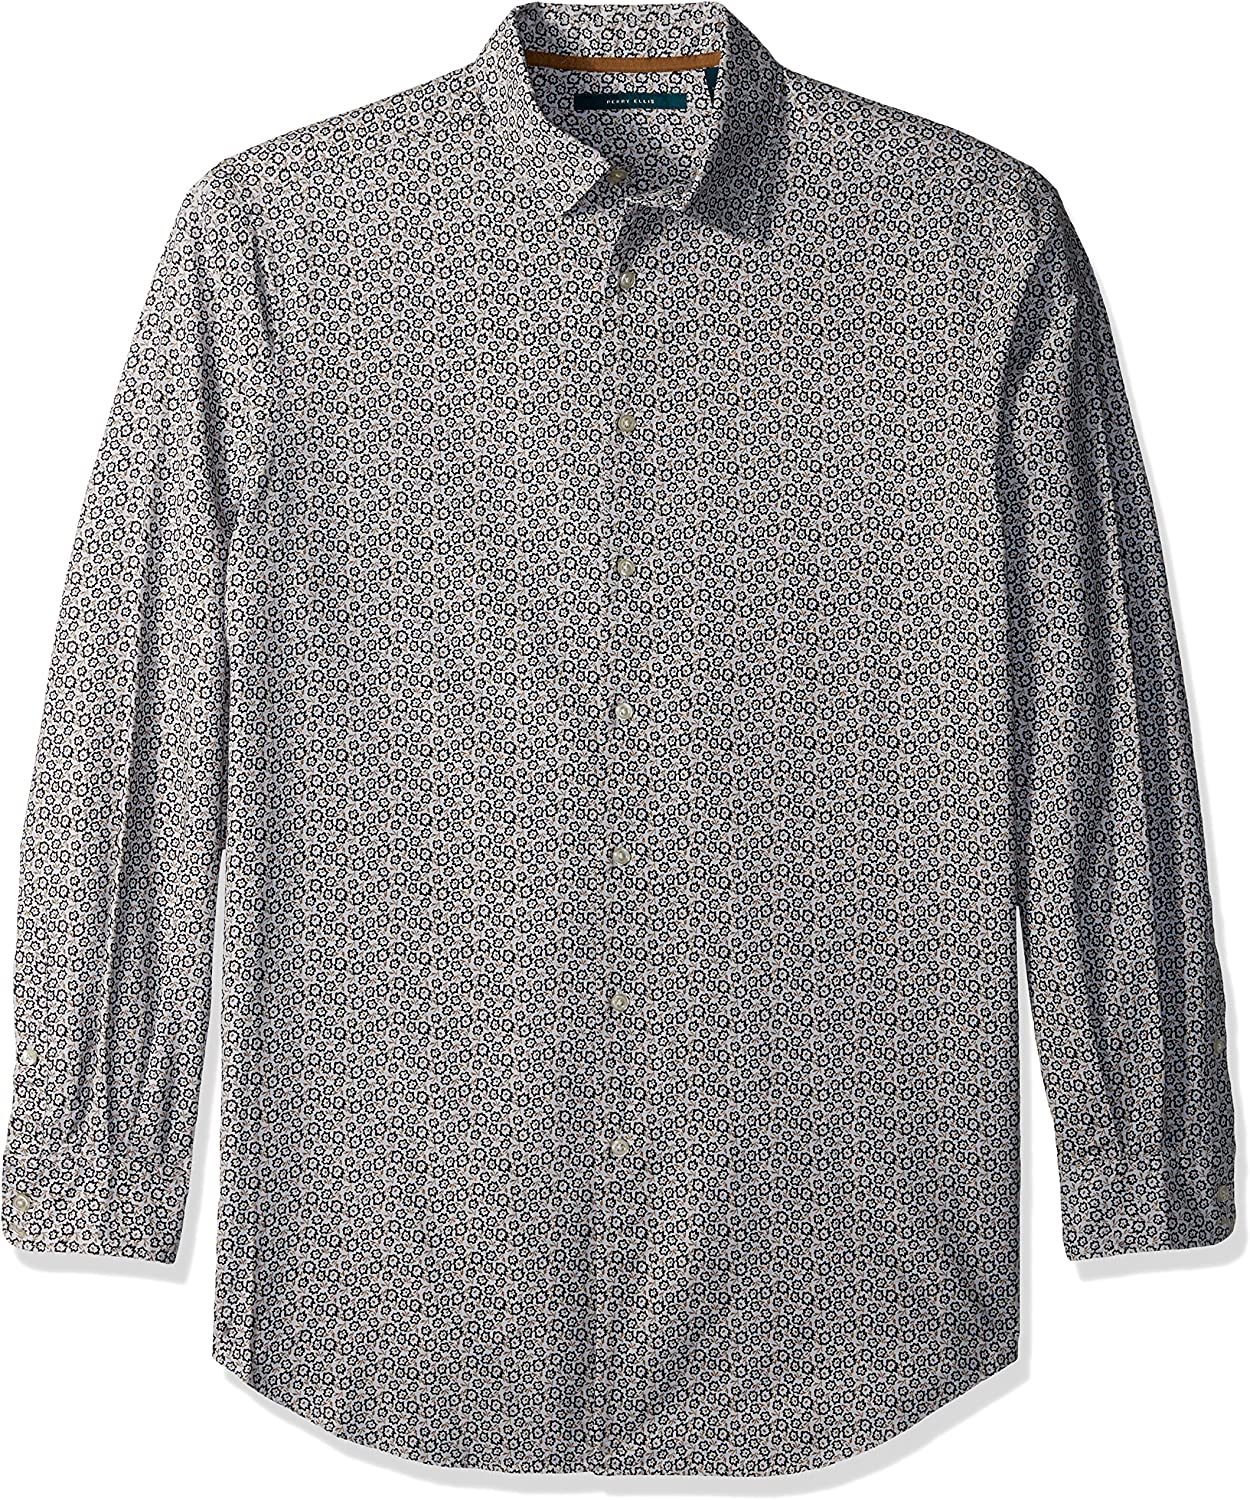 Perry Ellis Men's Big and Tall Big & Tall Graphed Floral Oxford Shirt